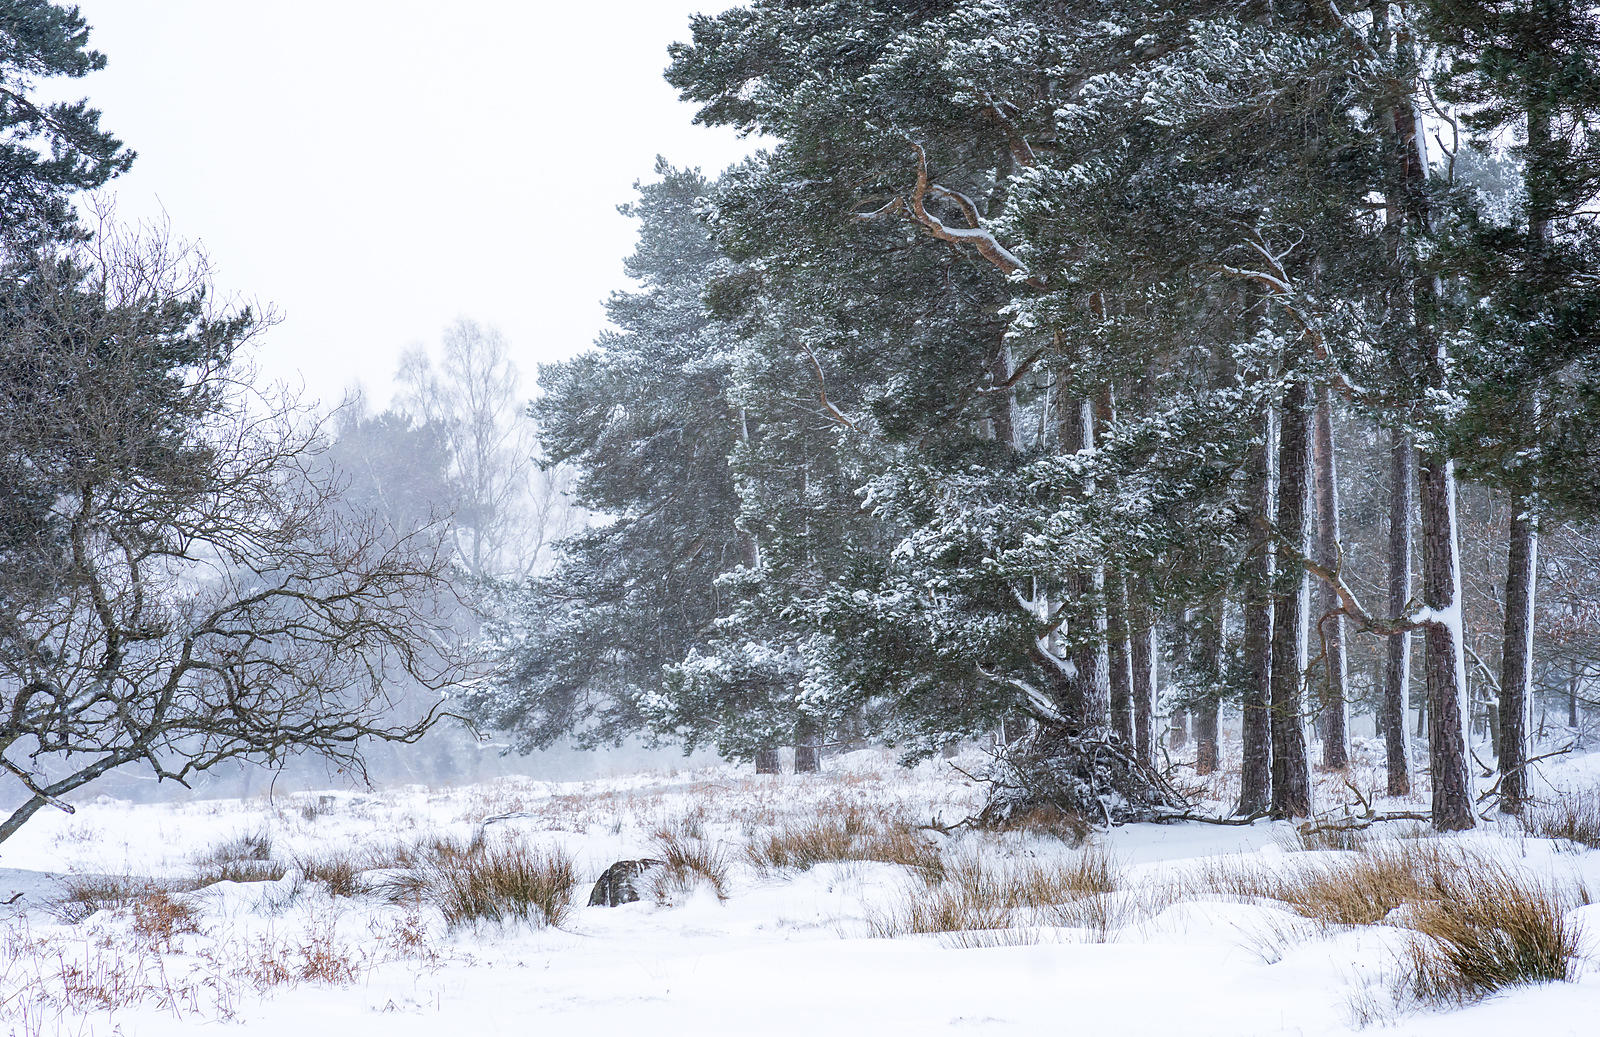 Late winter snowfall on the Longshaw Estate